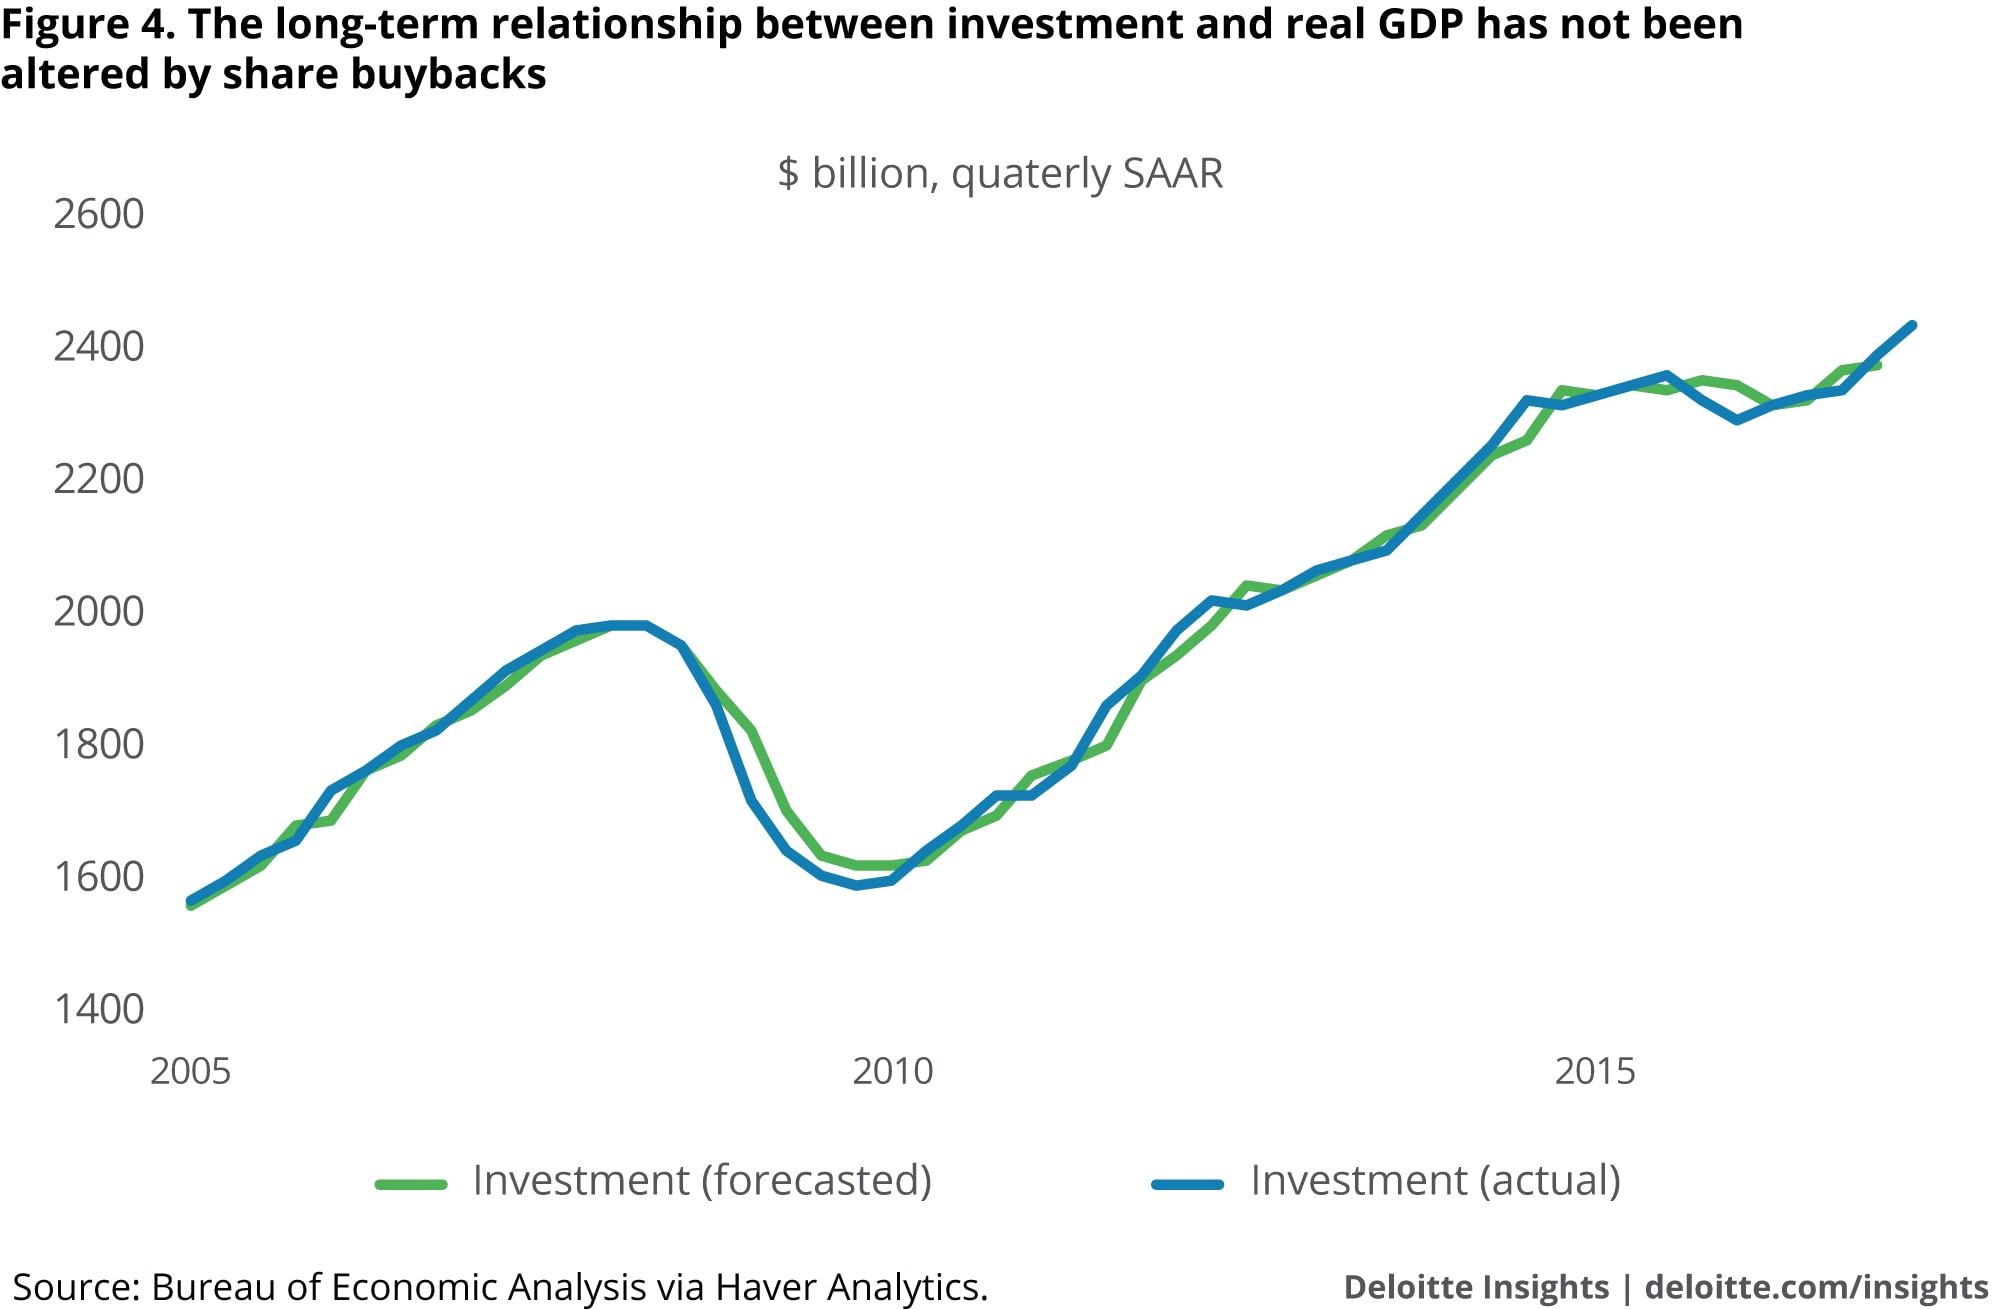 The long-term relationship between investment and real GDP has not been altered by share buybacks